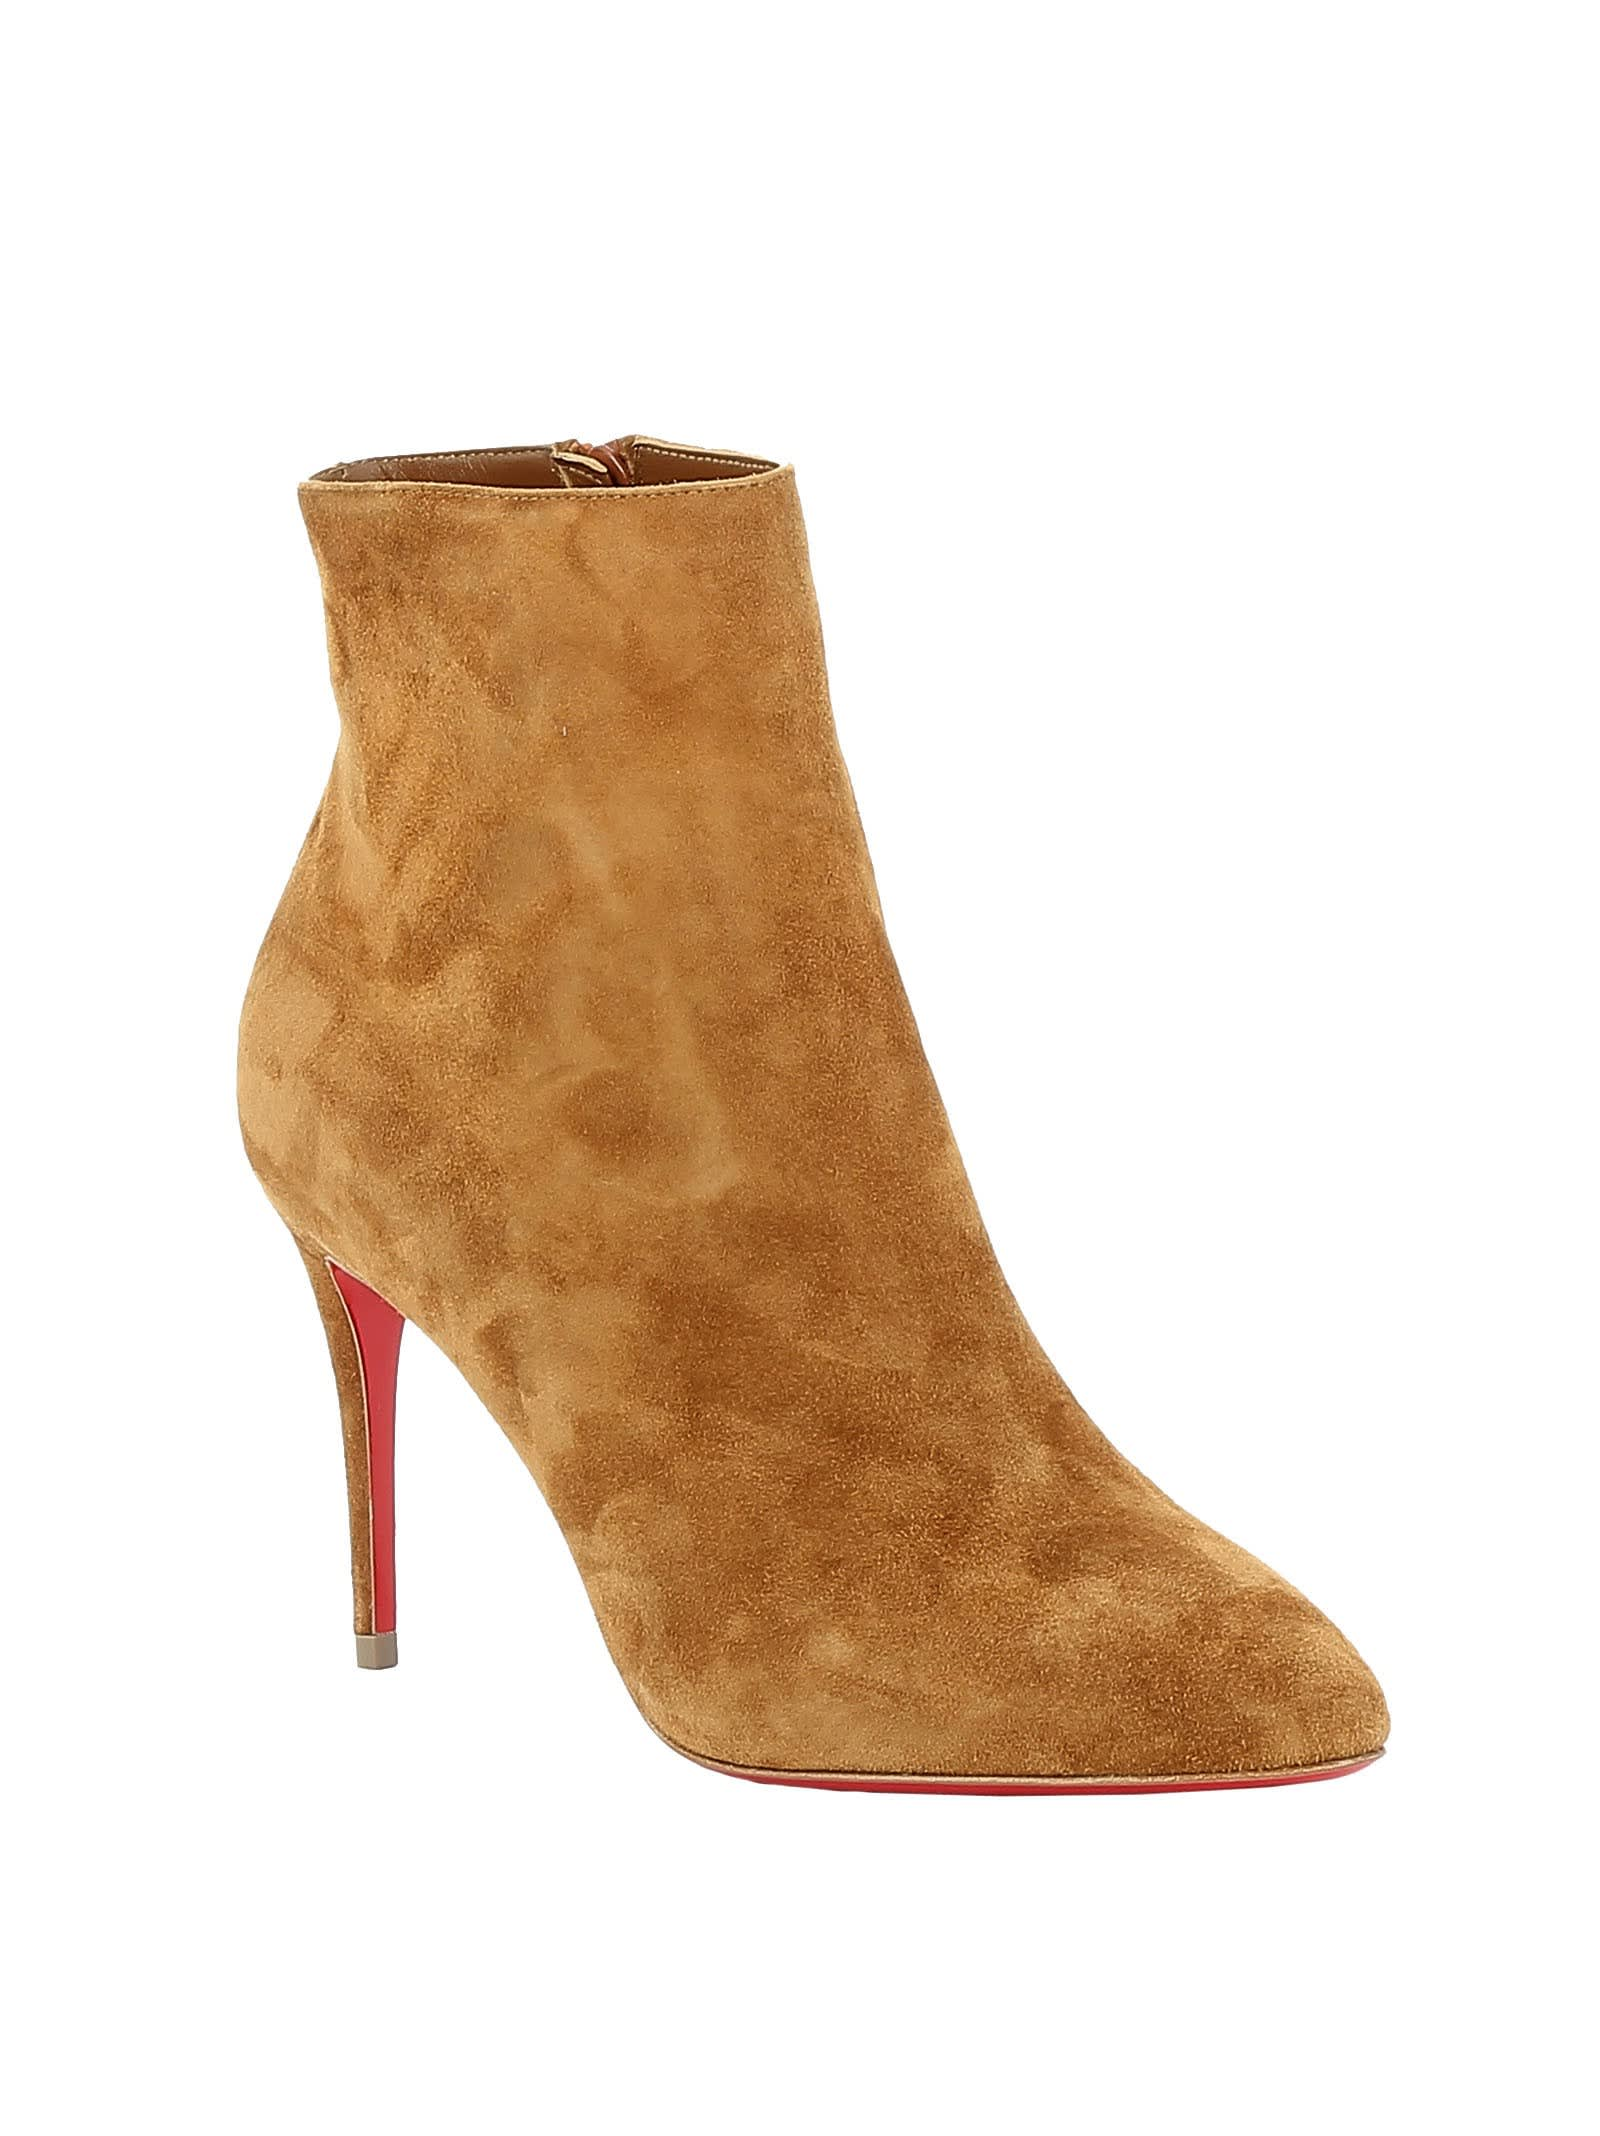 innovative design f1c32 98bd2 Best price on the market at italist | Christian Louboutin Christian  Louboutin Cuoio Suede Ankle Boots